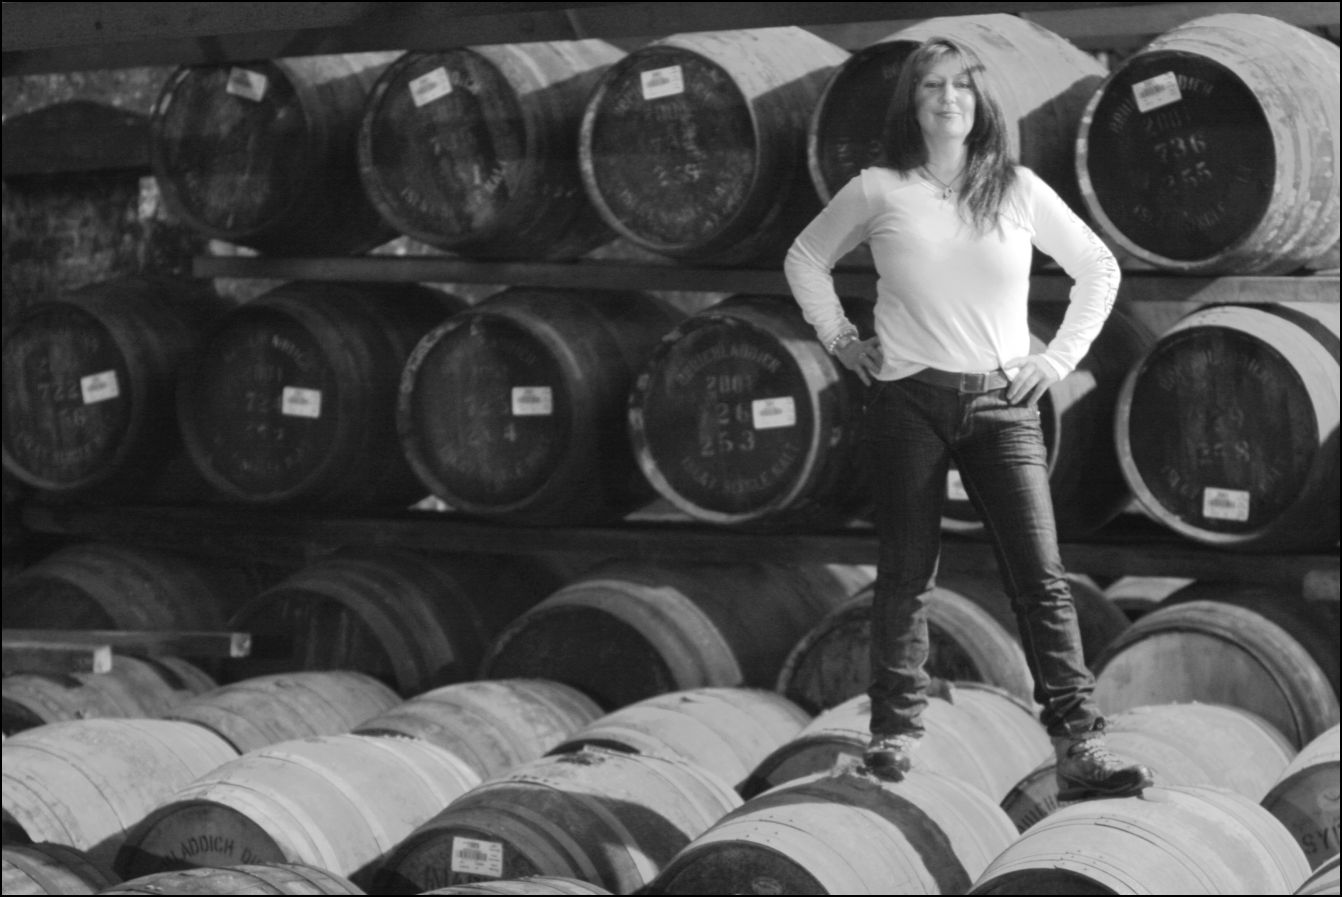 Rachel on casks Black & White